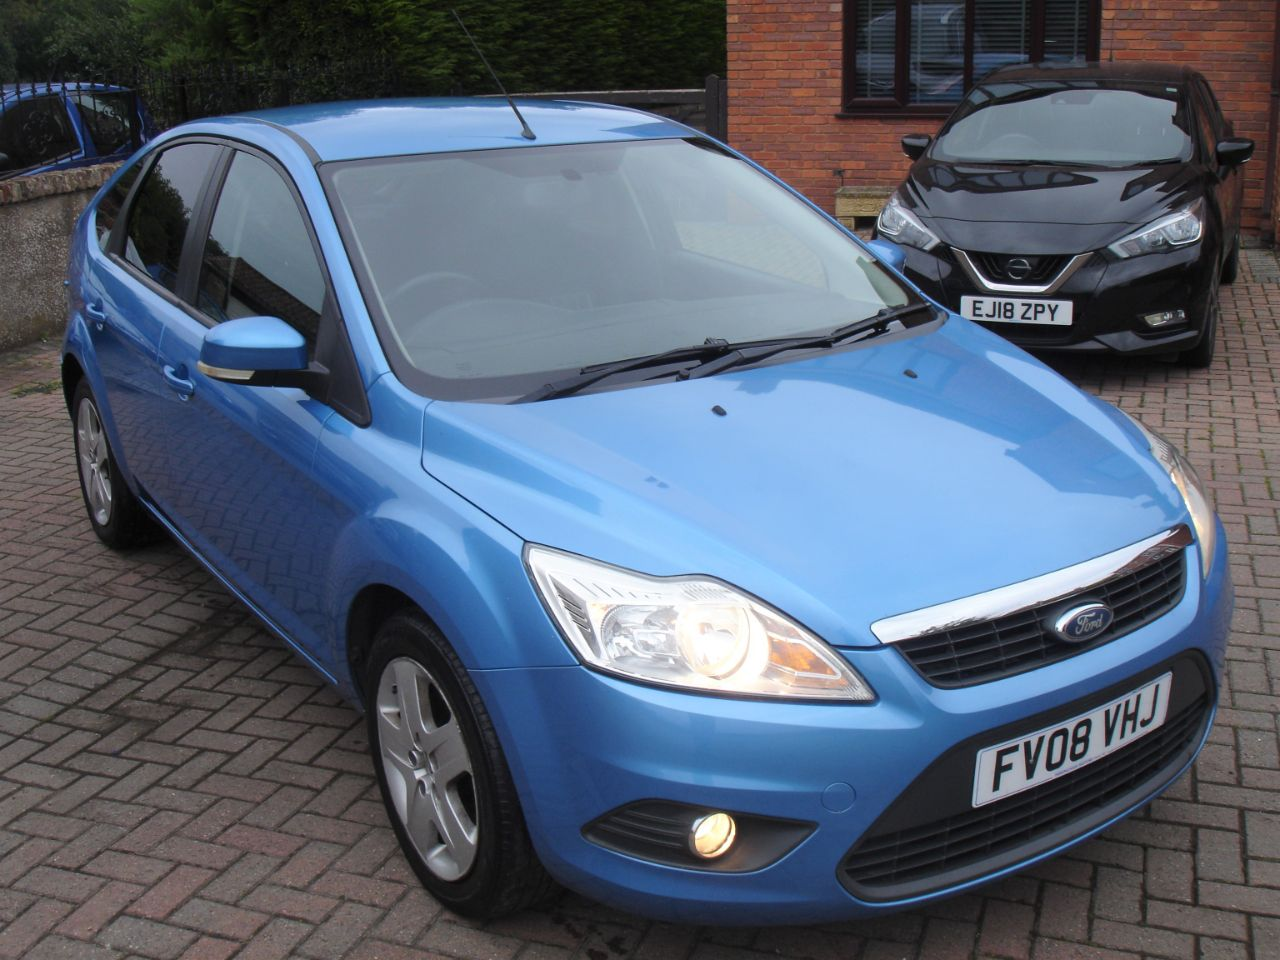 Ford Focus 1.8 TDCi Style 5dr Hatchback Diesel Metallic Blue at Level Pitch Selby